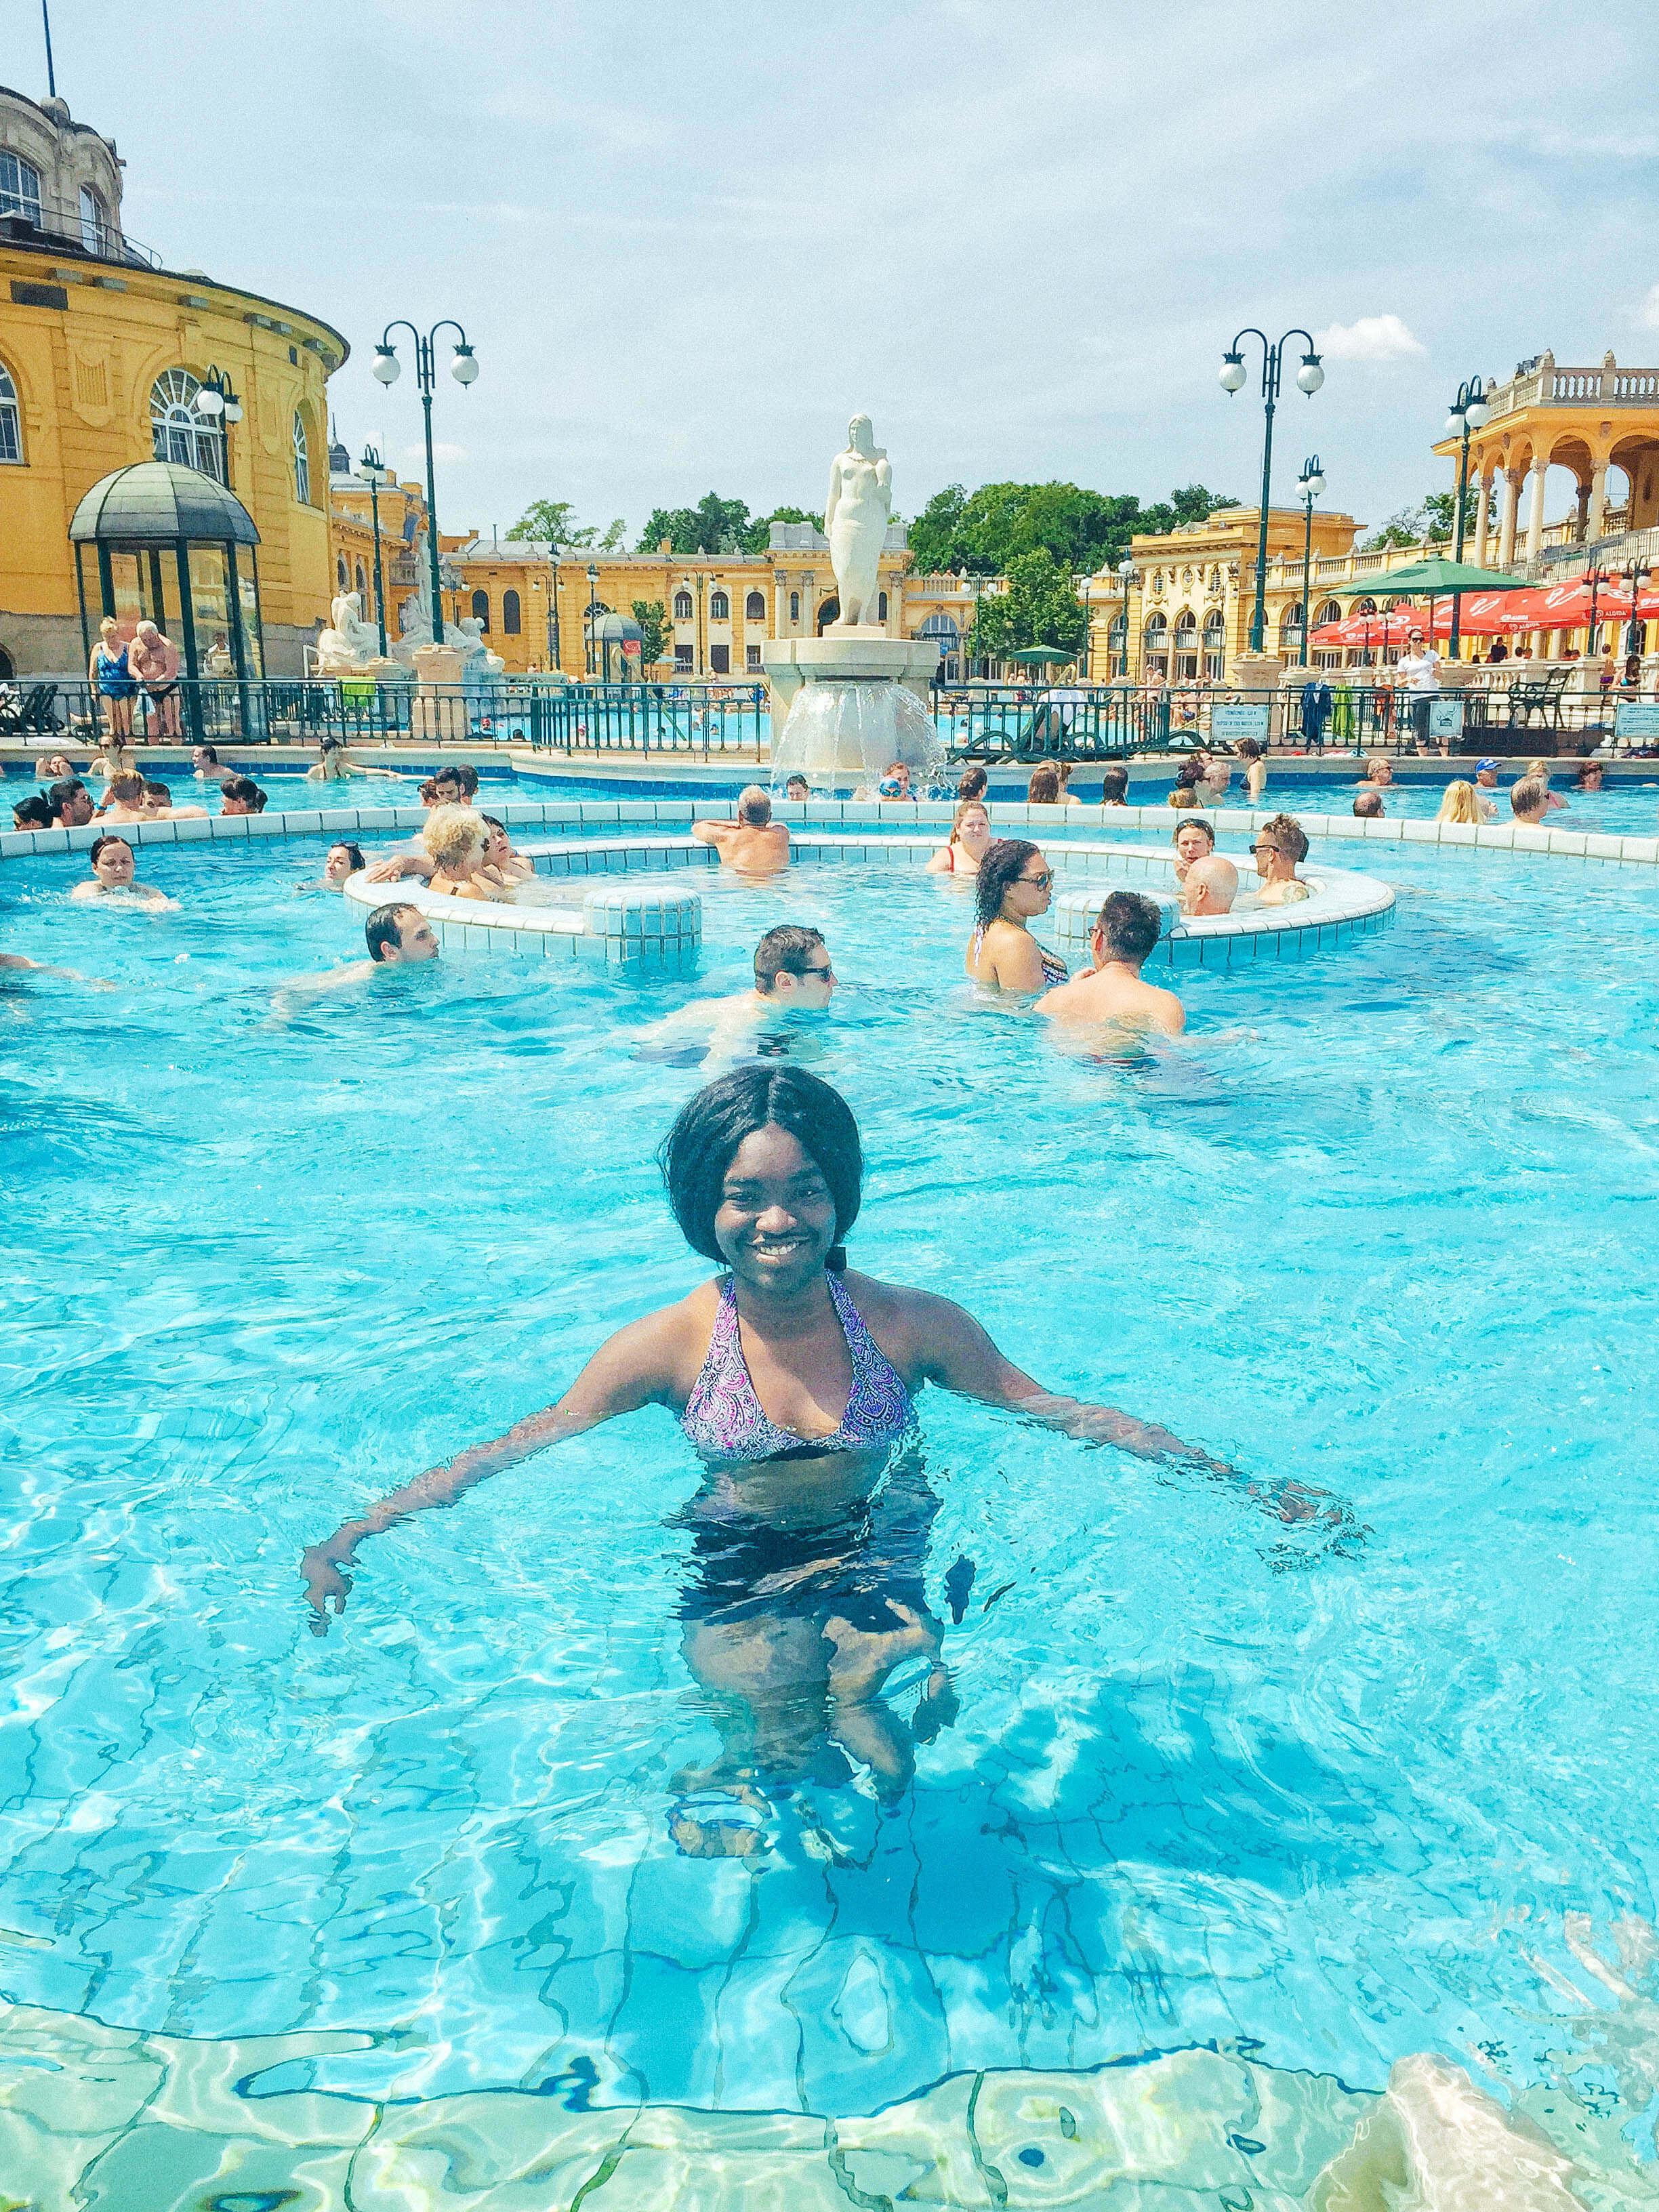 Friendliest countries for black travelers - Schezenyi bath swim